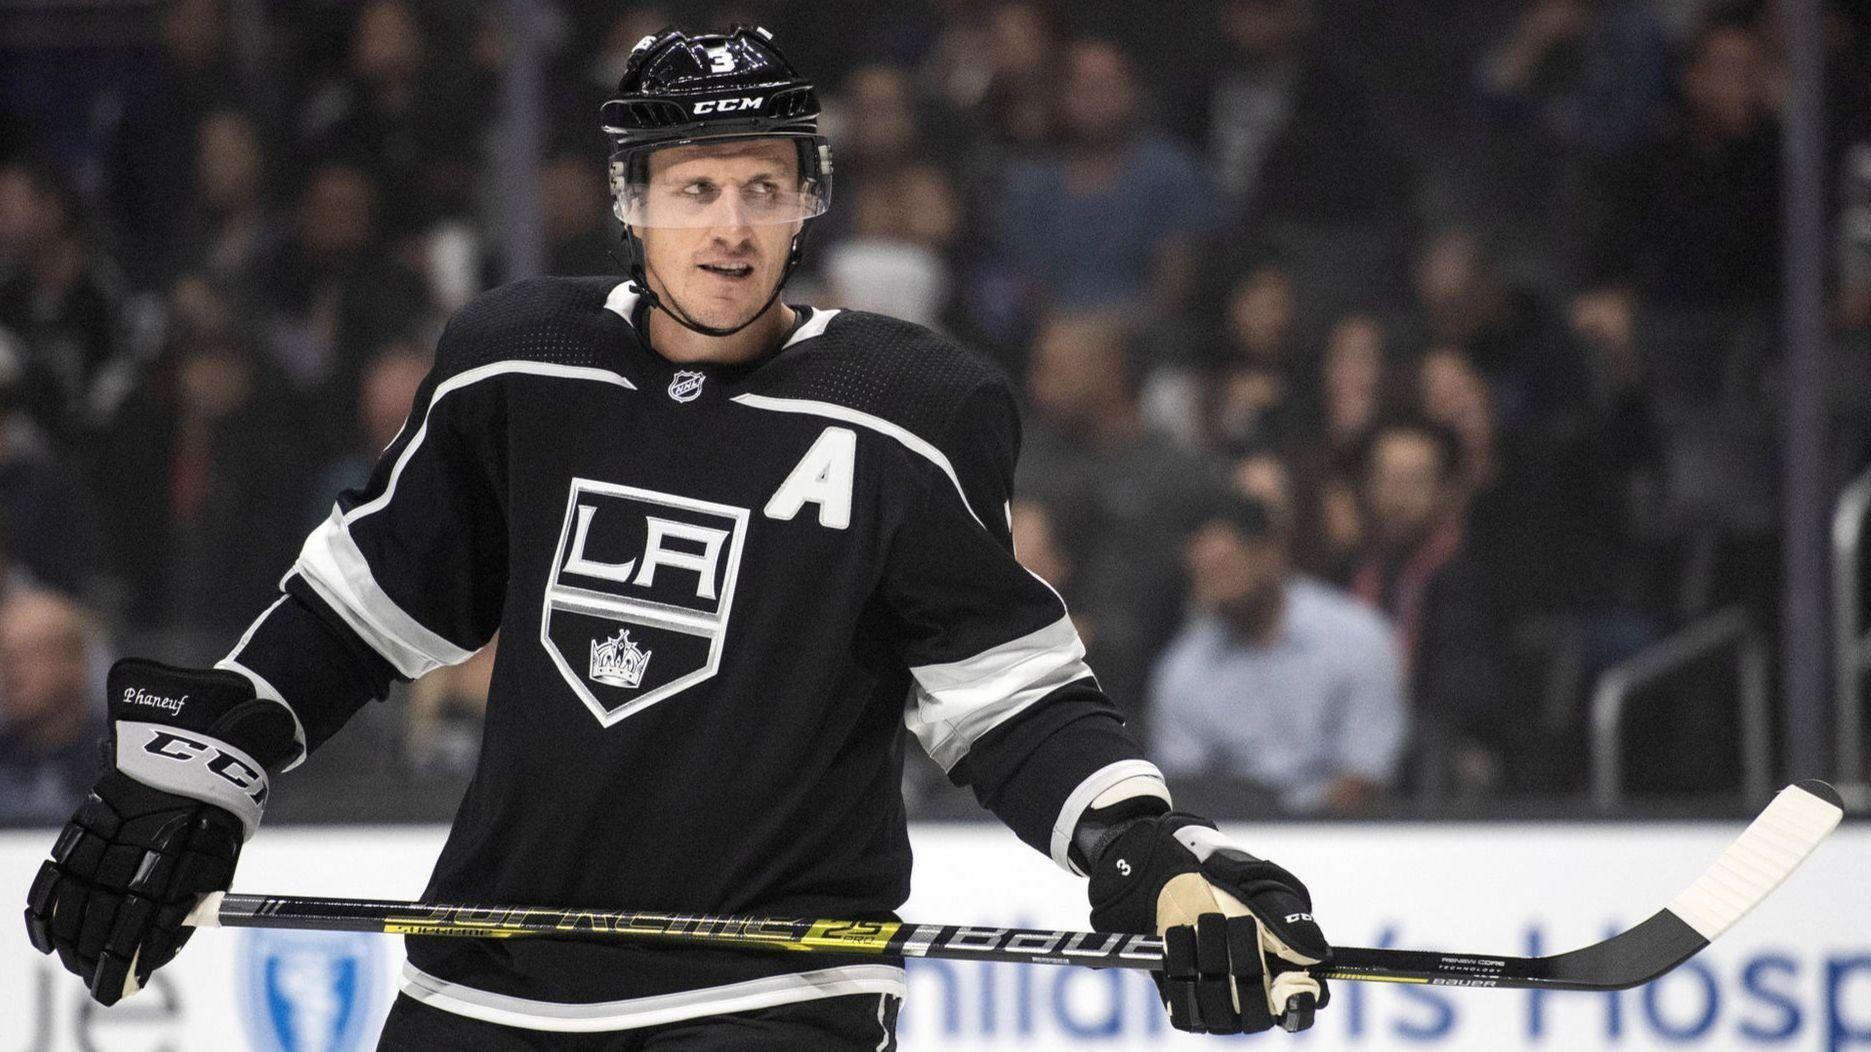 After all these years, Kings defenseman Dion Phaneuf still inspires teammates and irritates opponents